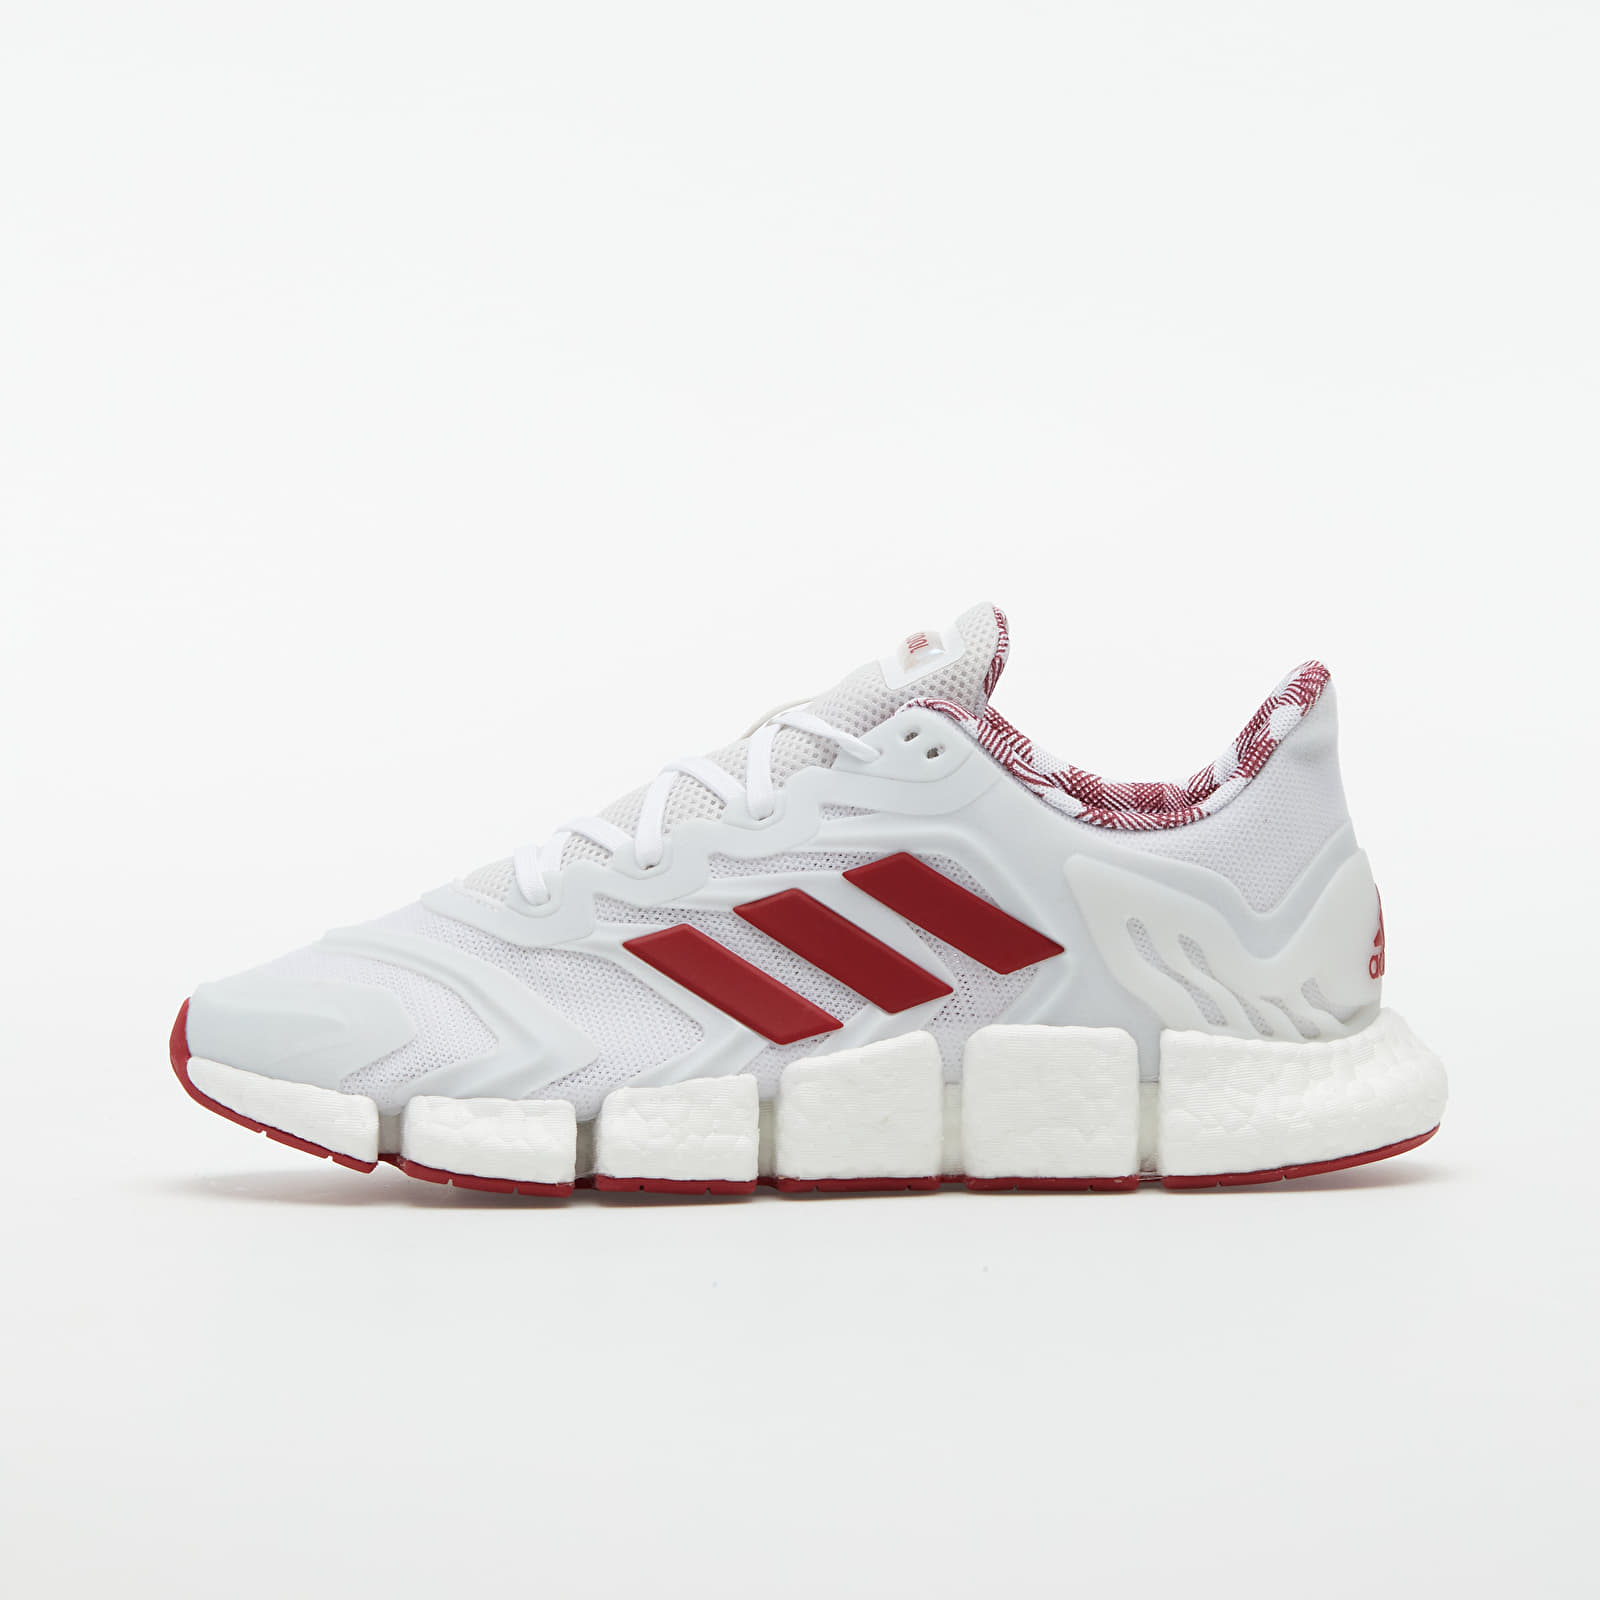 adidas Climacool Vento Ftw White/ Team Victory Red/ Ftw White EUR 45 1/3